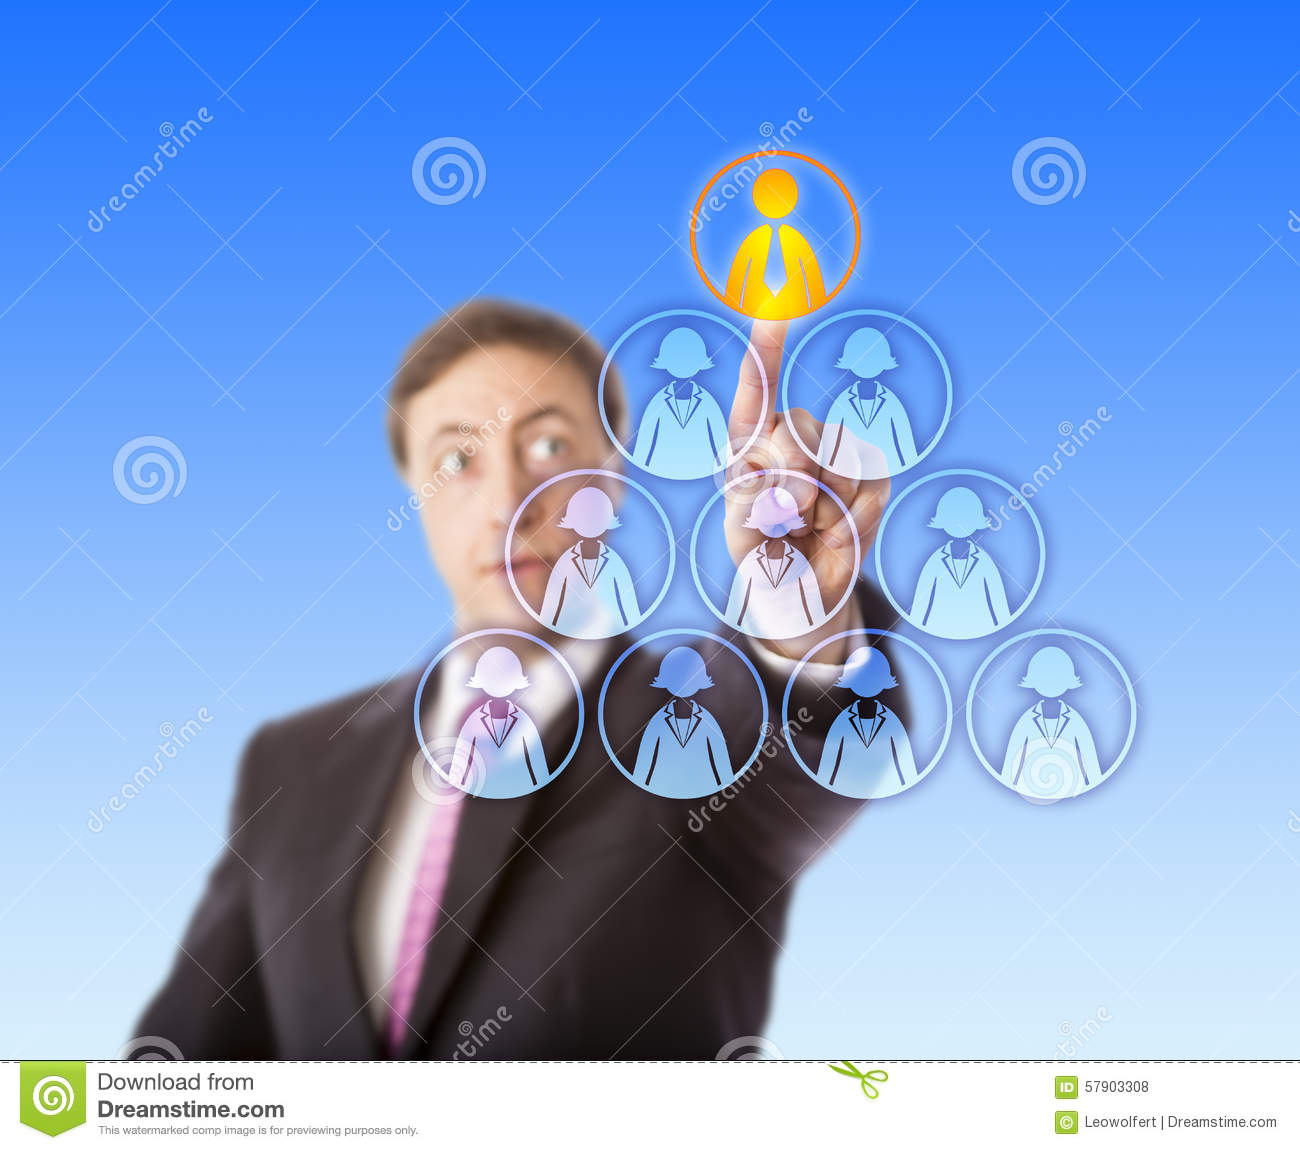 Manager Selecting A Male Worker Atop A Pyramid